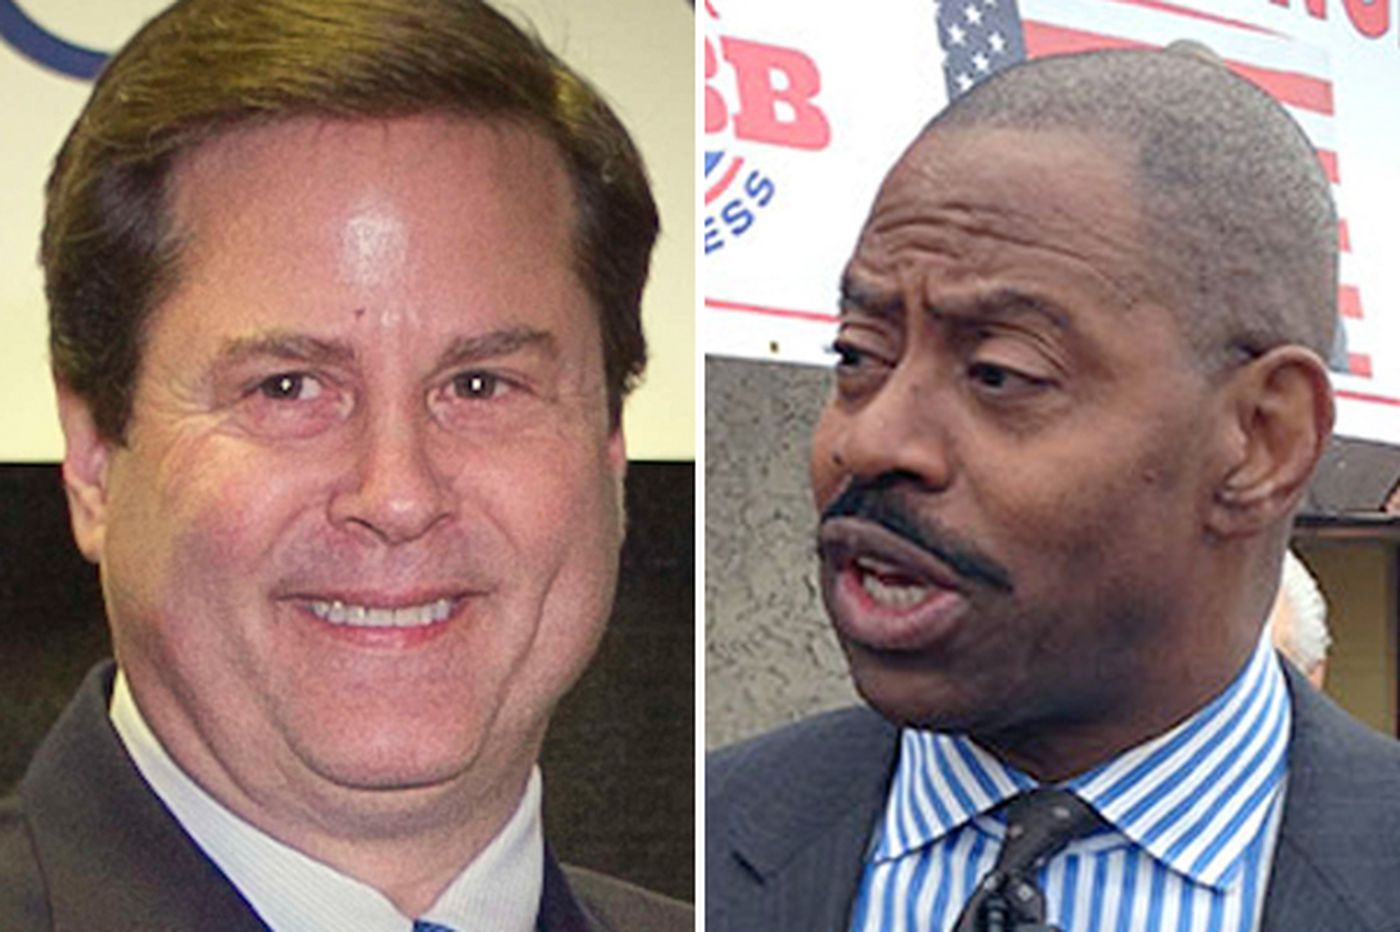 Norcross, Cobb win in N.J.'s First District